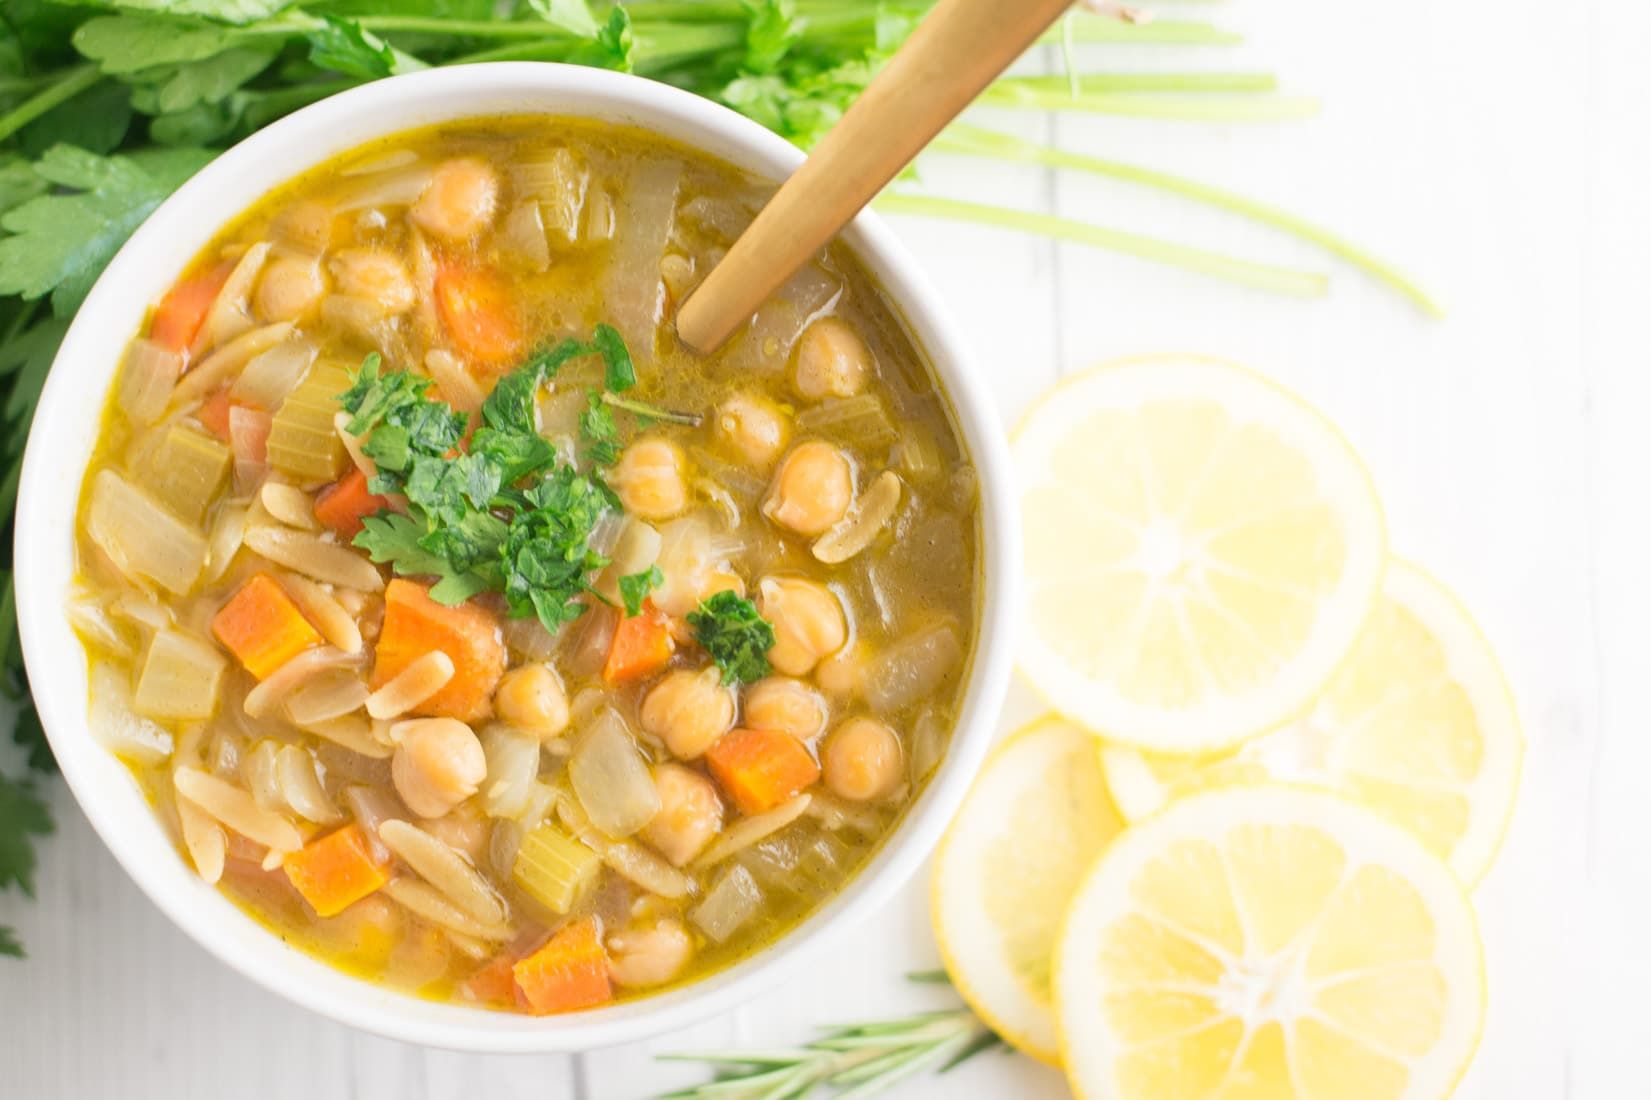 Orzo Lemon Soup with Chickpeas -- This light and refreshing soup is healthy but not short of flavor. The hint of lemon makes this soup enjoyable in the warmer months! - mindfulavocado